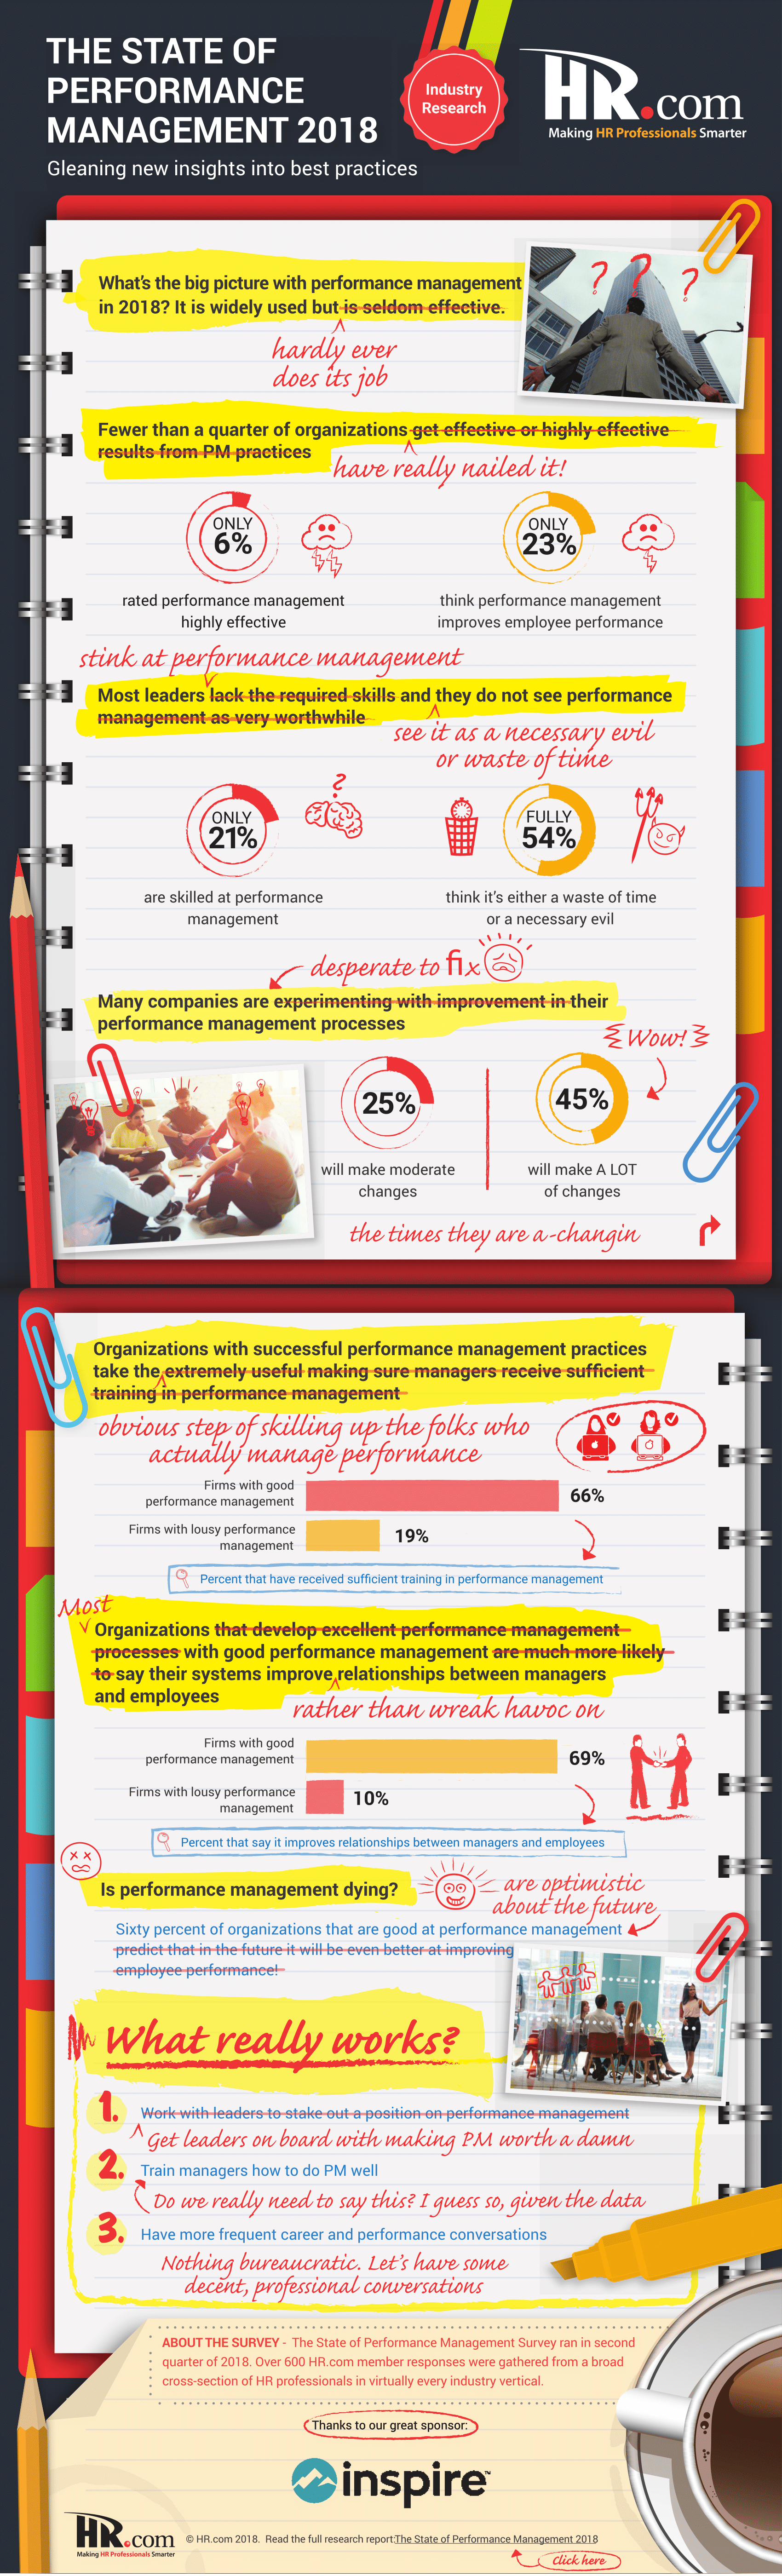 The-State-of-Peformance-Management-2018_INFOGRAPHIC_HRdotcom_Aug2018-1